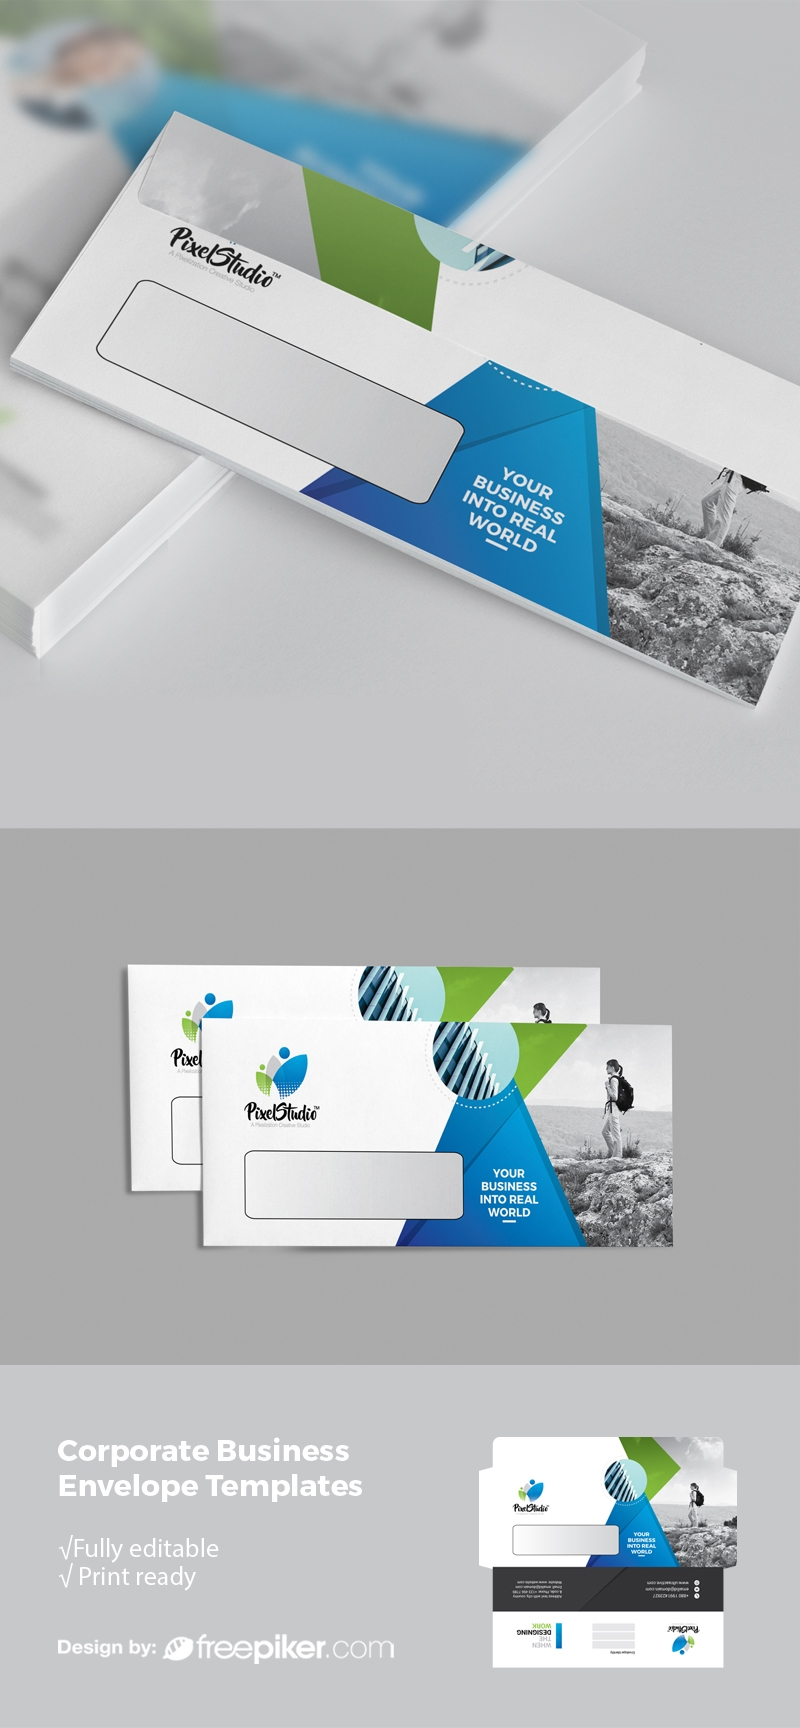 Corporate Business DL Envelope Commercial With Color